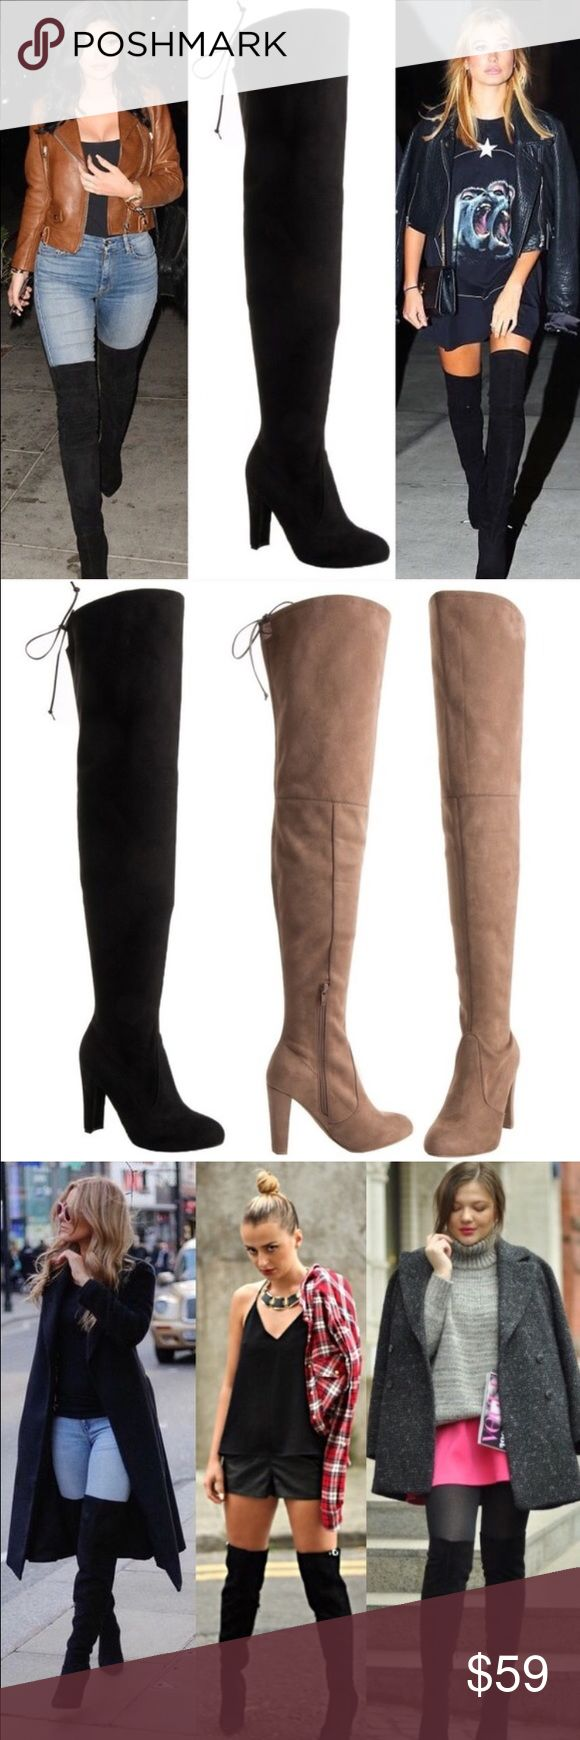 """30"""" Thigh High HOST PICK DON'T BUY IF YOU DON'T WANT VERY TALL SHAFTS! Faux suede upper and wrapped heel. Adjustable drawstring/cord. 4"""" heel. Zipper runs from footbed to mid leg. Calf, 15"""". Top of shaft, 19"""". Total height from heel tip to top of shaft, 30 1/2"""". CENTER IMAGE 1, IMAGE 2, IMAGE 4 SHOW ACTUAL BOOT STYLE FOR SALE. Image 3, image 1 left & right are for styling ideas only. As with all merchandise, seller not responsible for fit nor comfort. ♠️THIS LISTING IS FOR BLACK♠️…"""